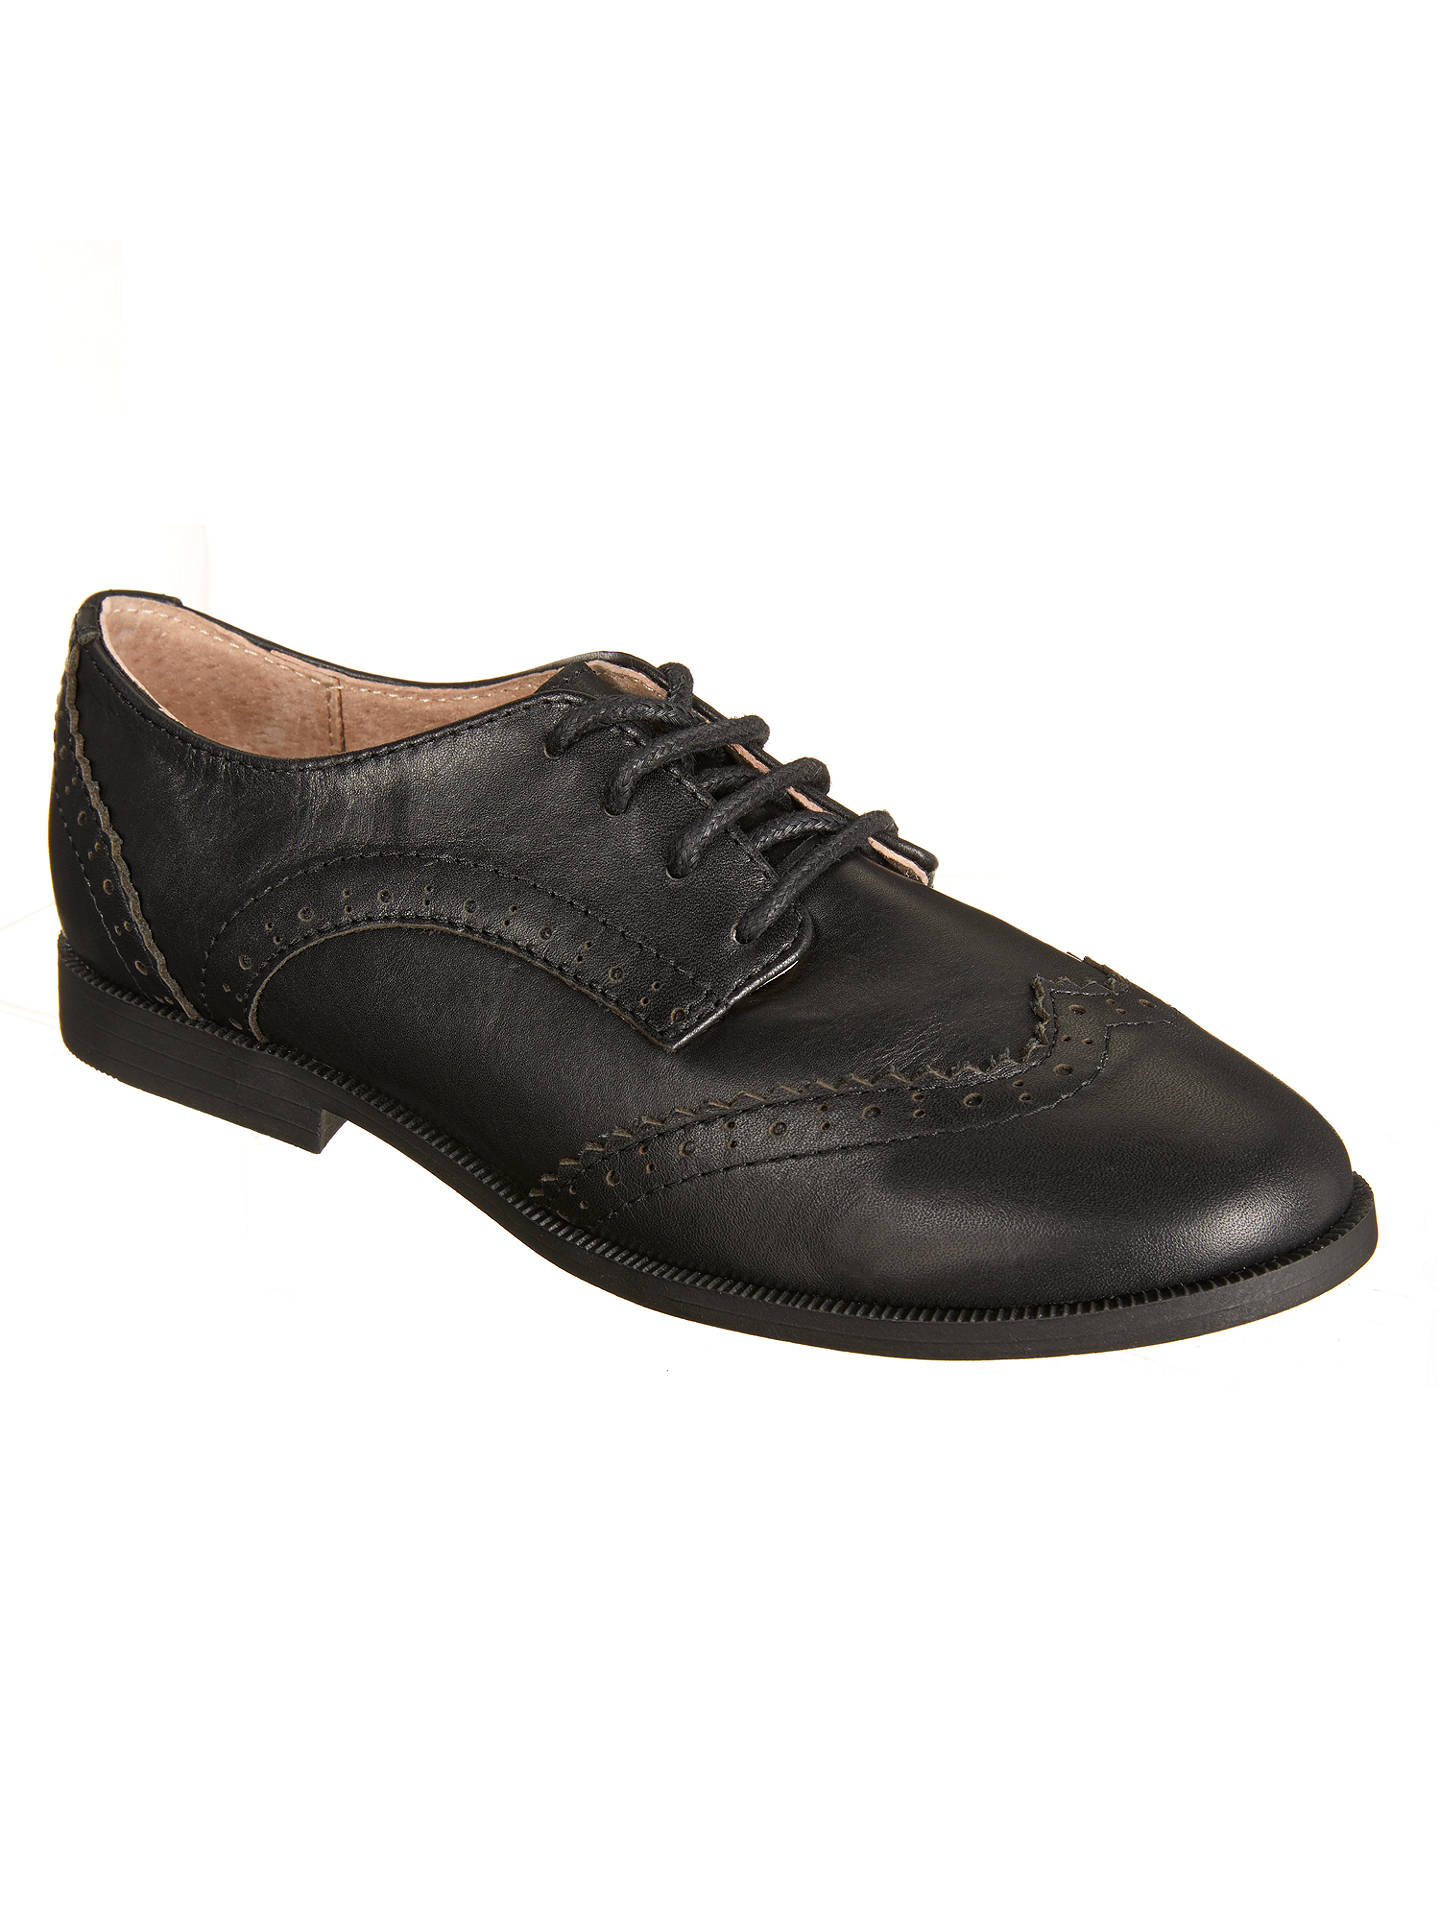 BuyJohn Lewis & Partners Children's Dorset Leather Brogue Shoes, Black, 13W Jnr Online at johnlewis.com